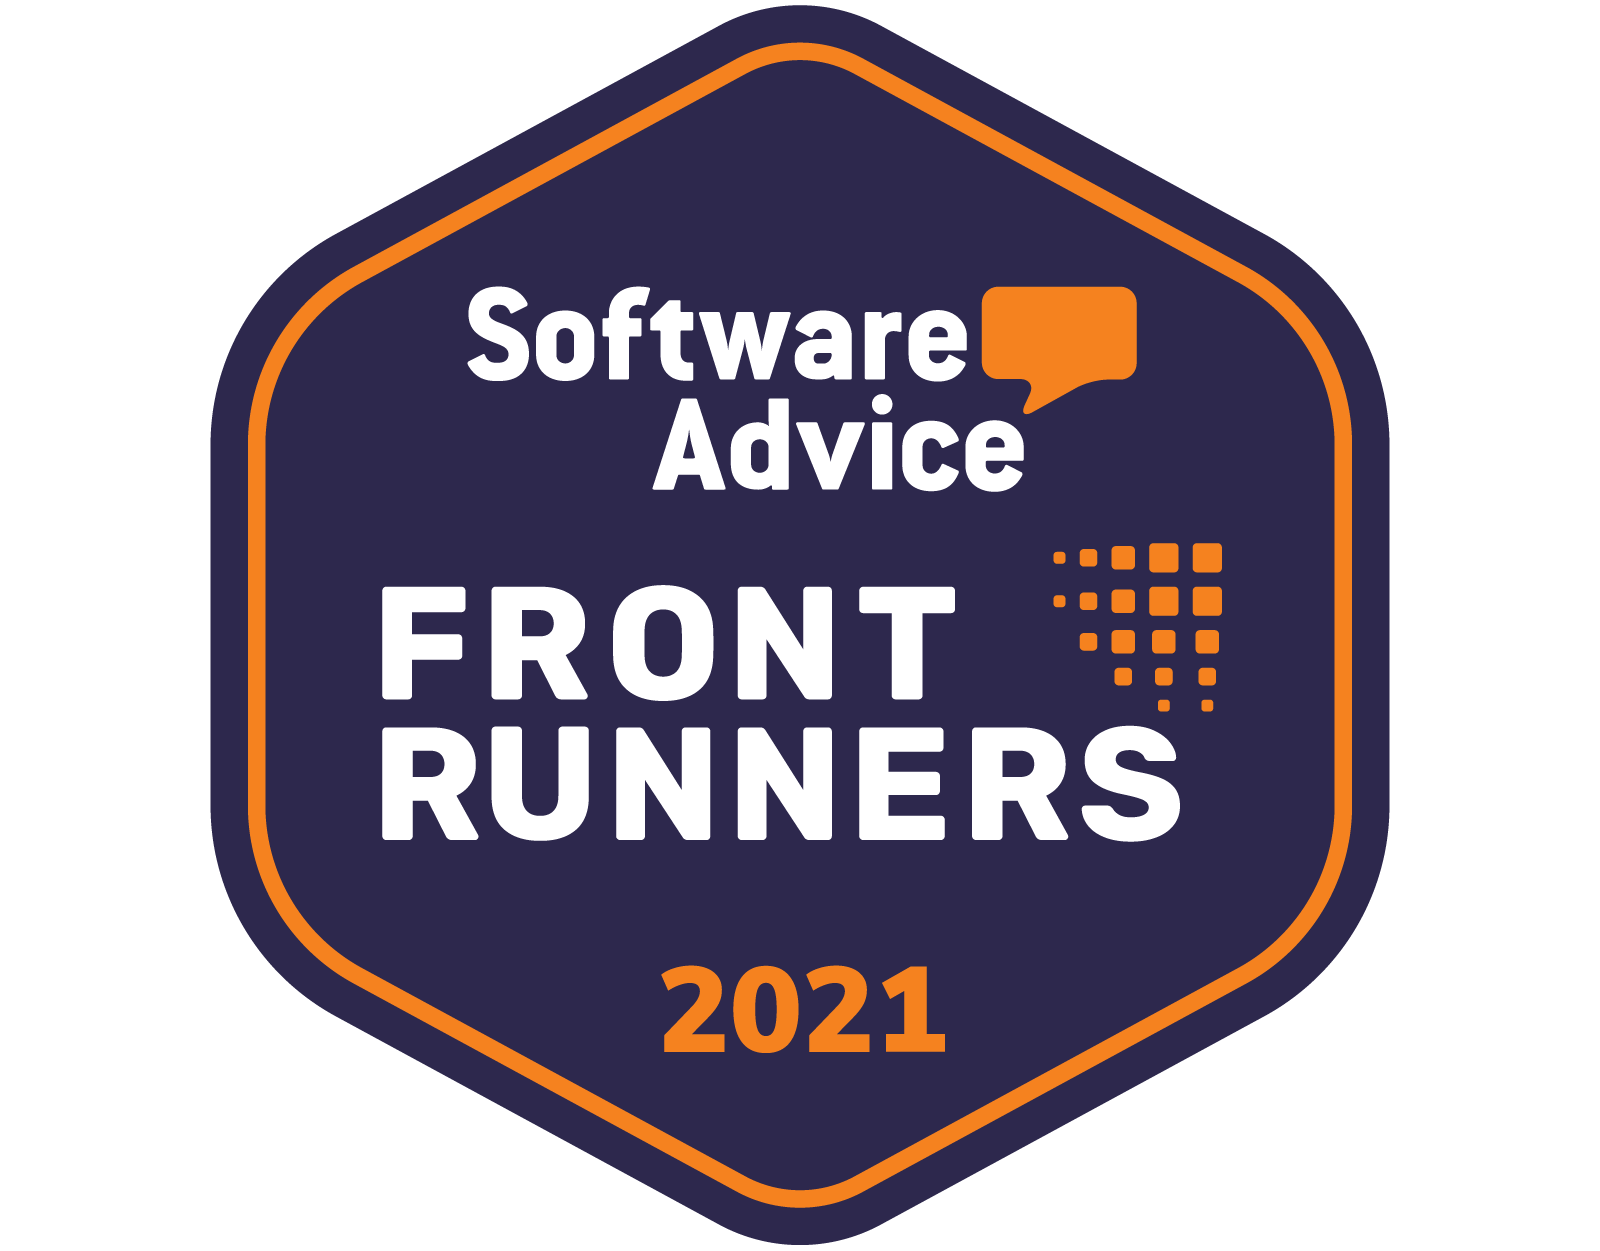 Software Advice Frontrunners for Registration Mar-21